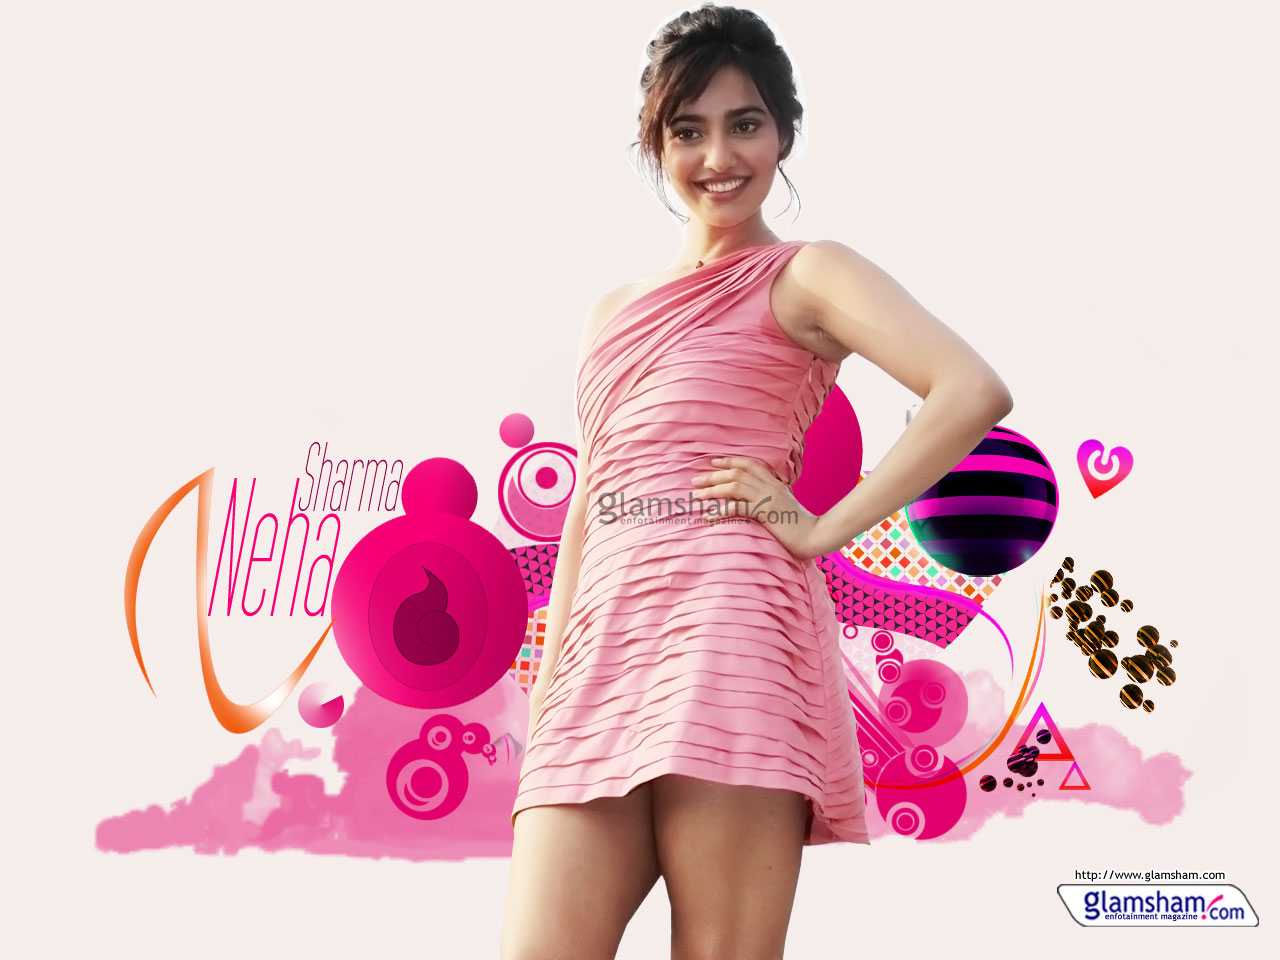 Great Wallpaper Name Neha - neha-sharma-wallpaper-34-12x9  2018_56249.jpg